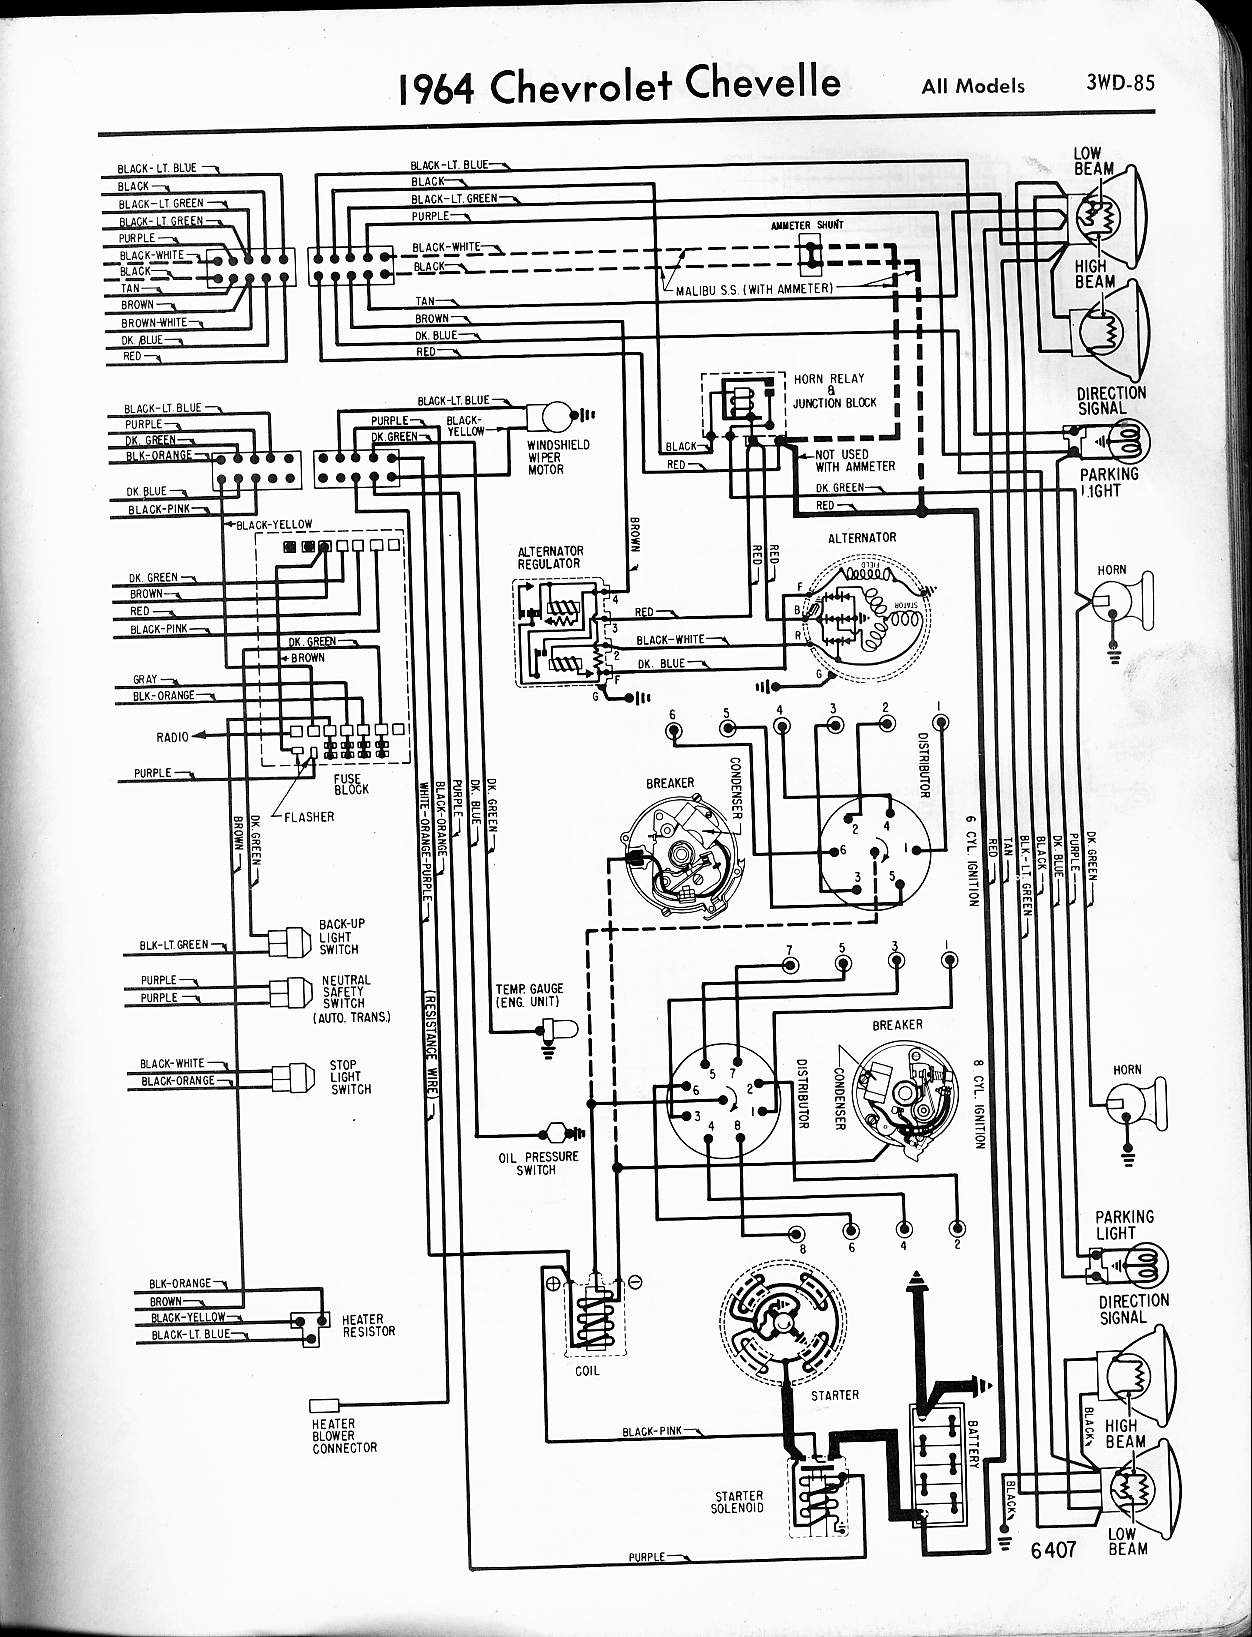 Chevy Diagrams Wiring Site 1964 Chevelle Diagram Figure A B